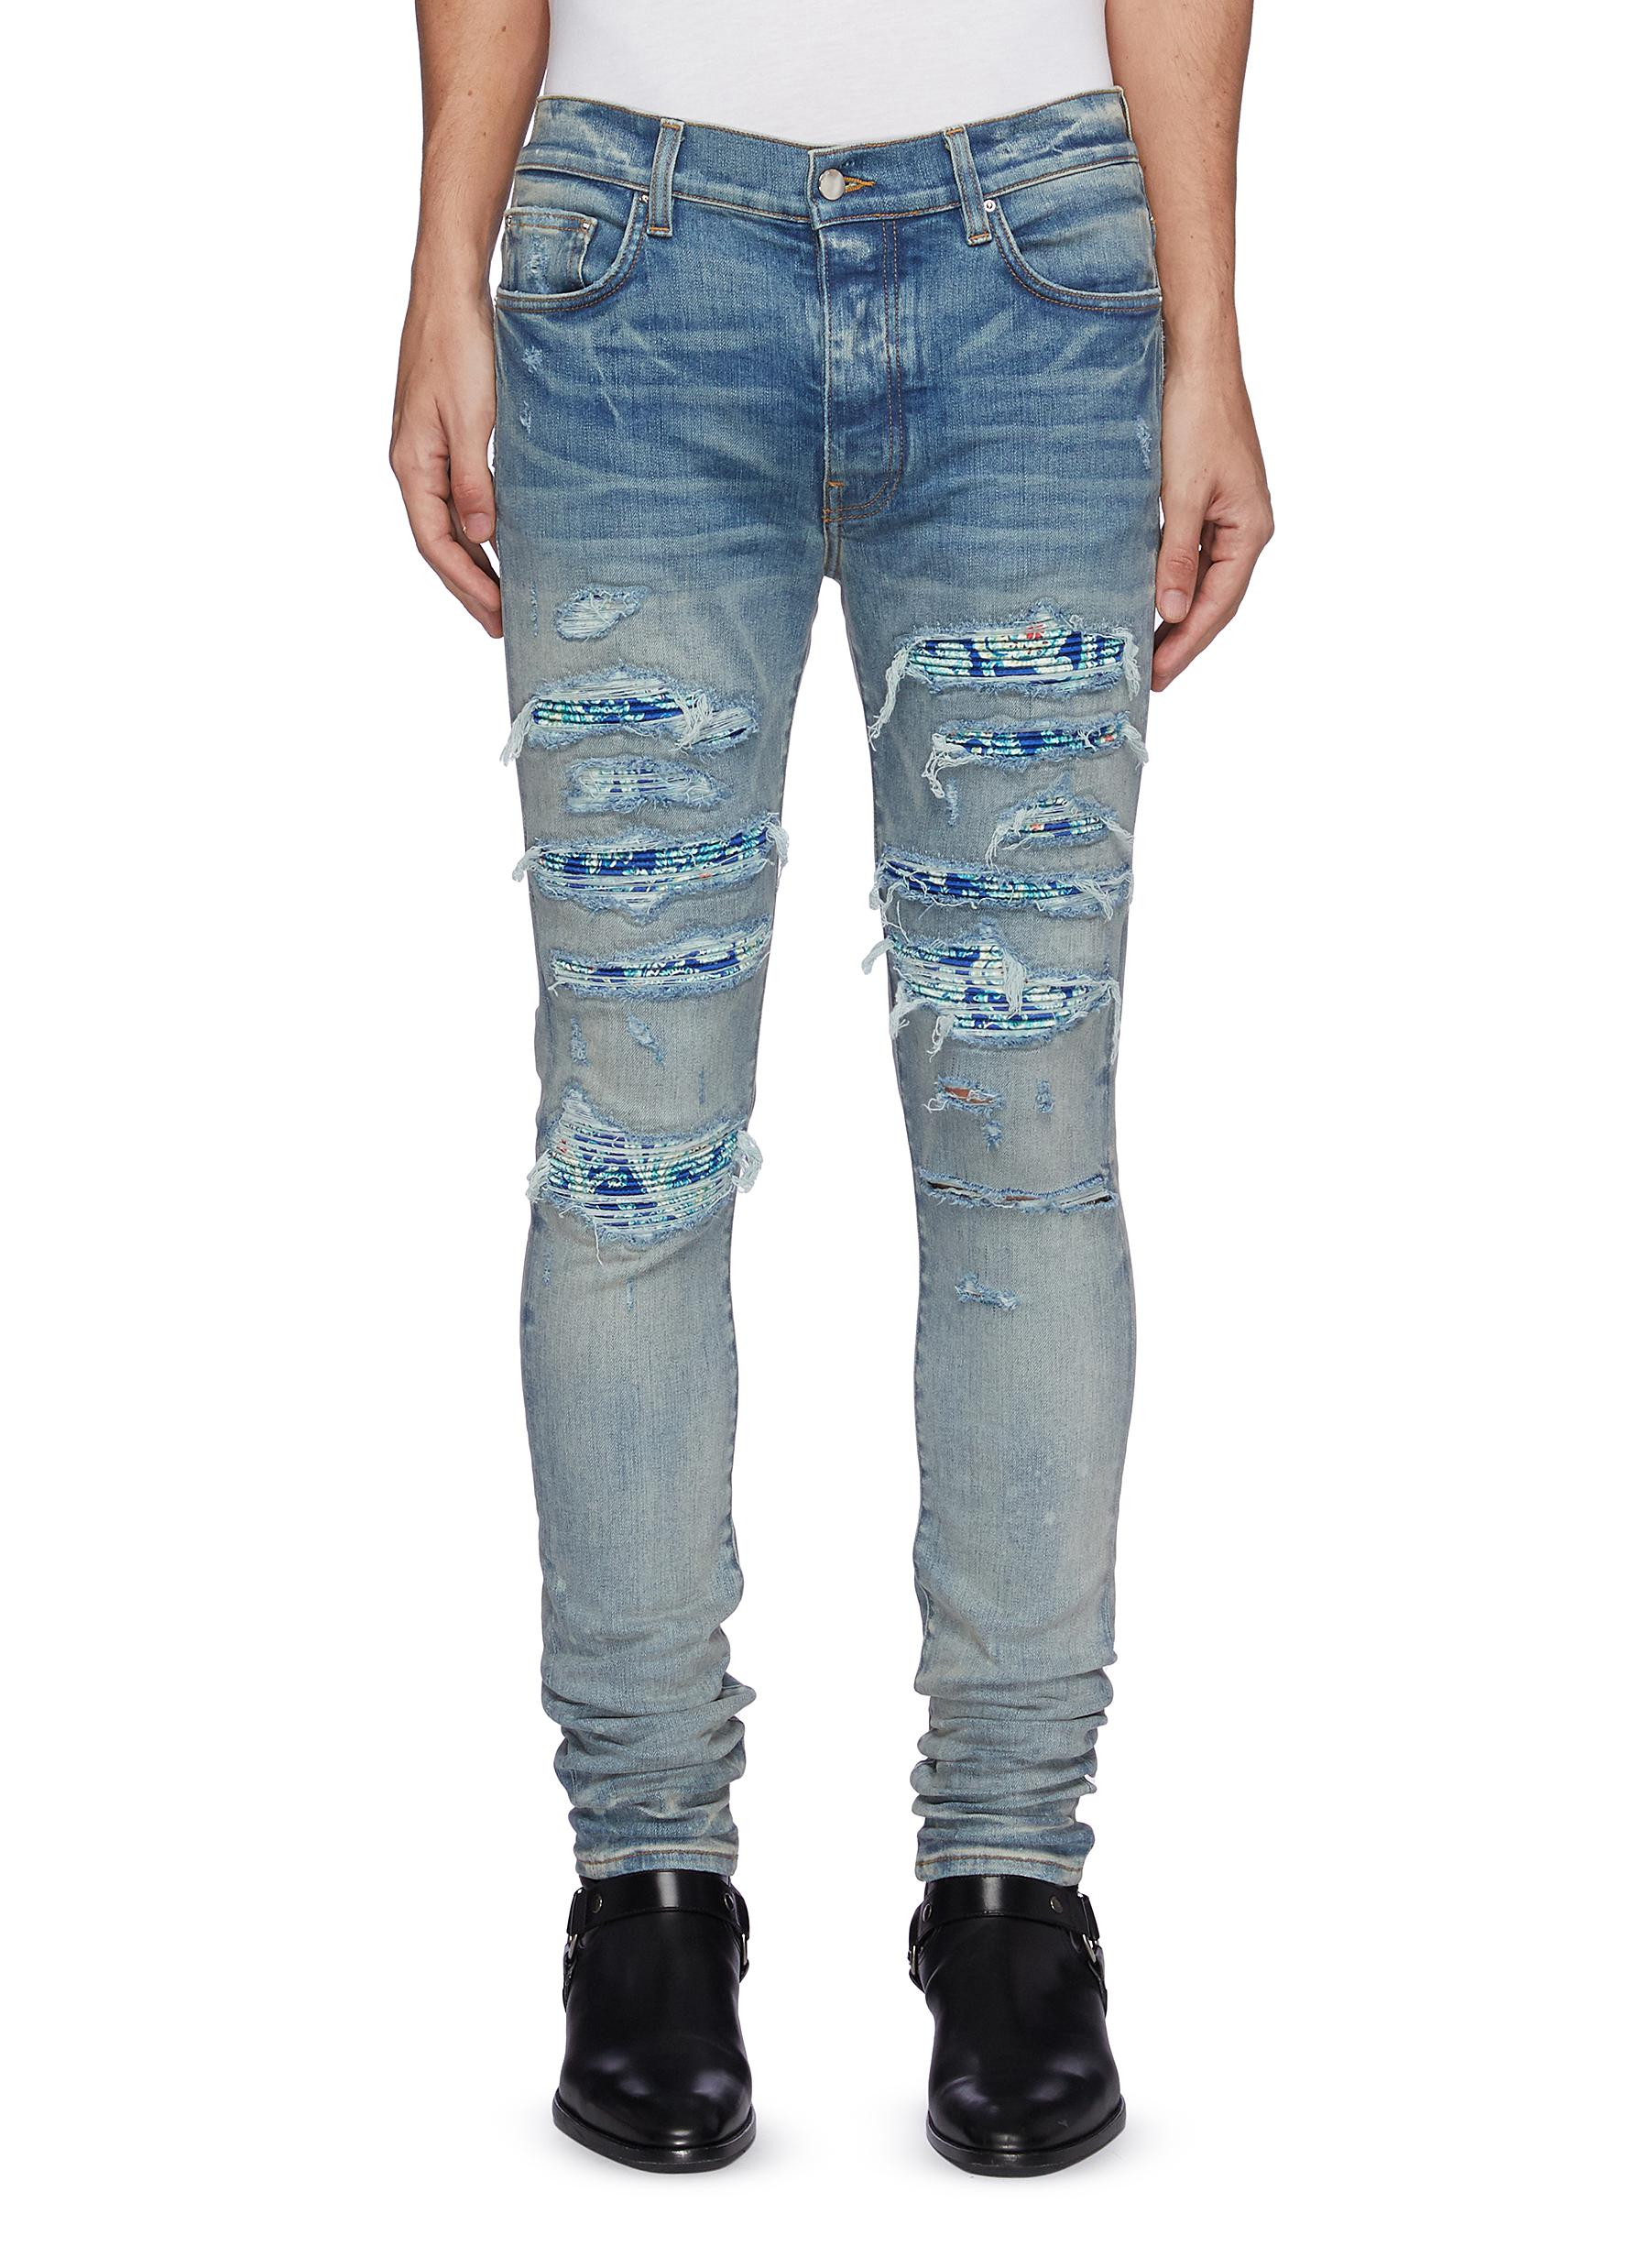 PJ Thrasher' Paisley Pleated Knee Patch Ripped Washed Skinny Jeans